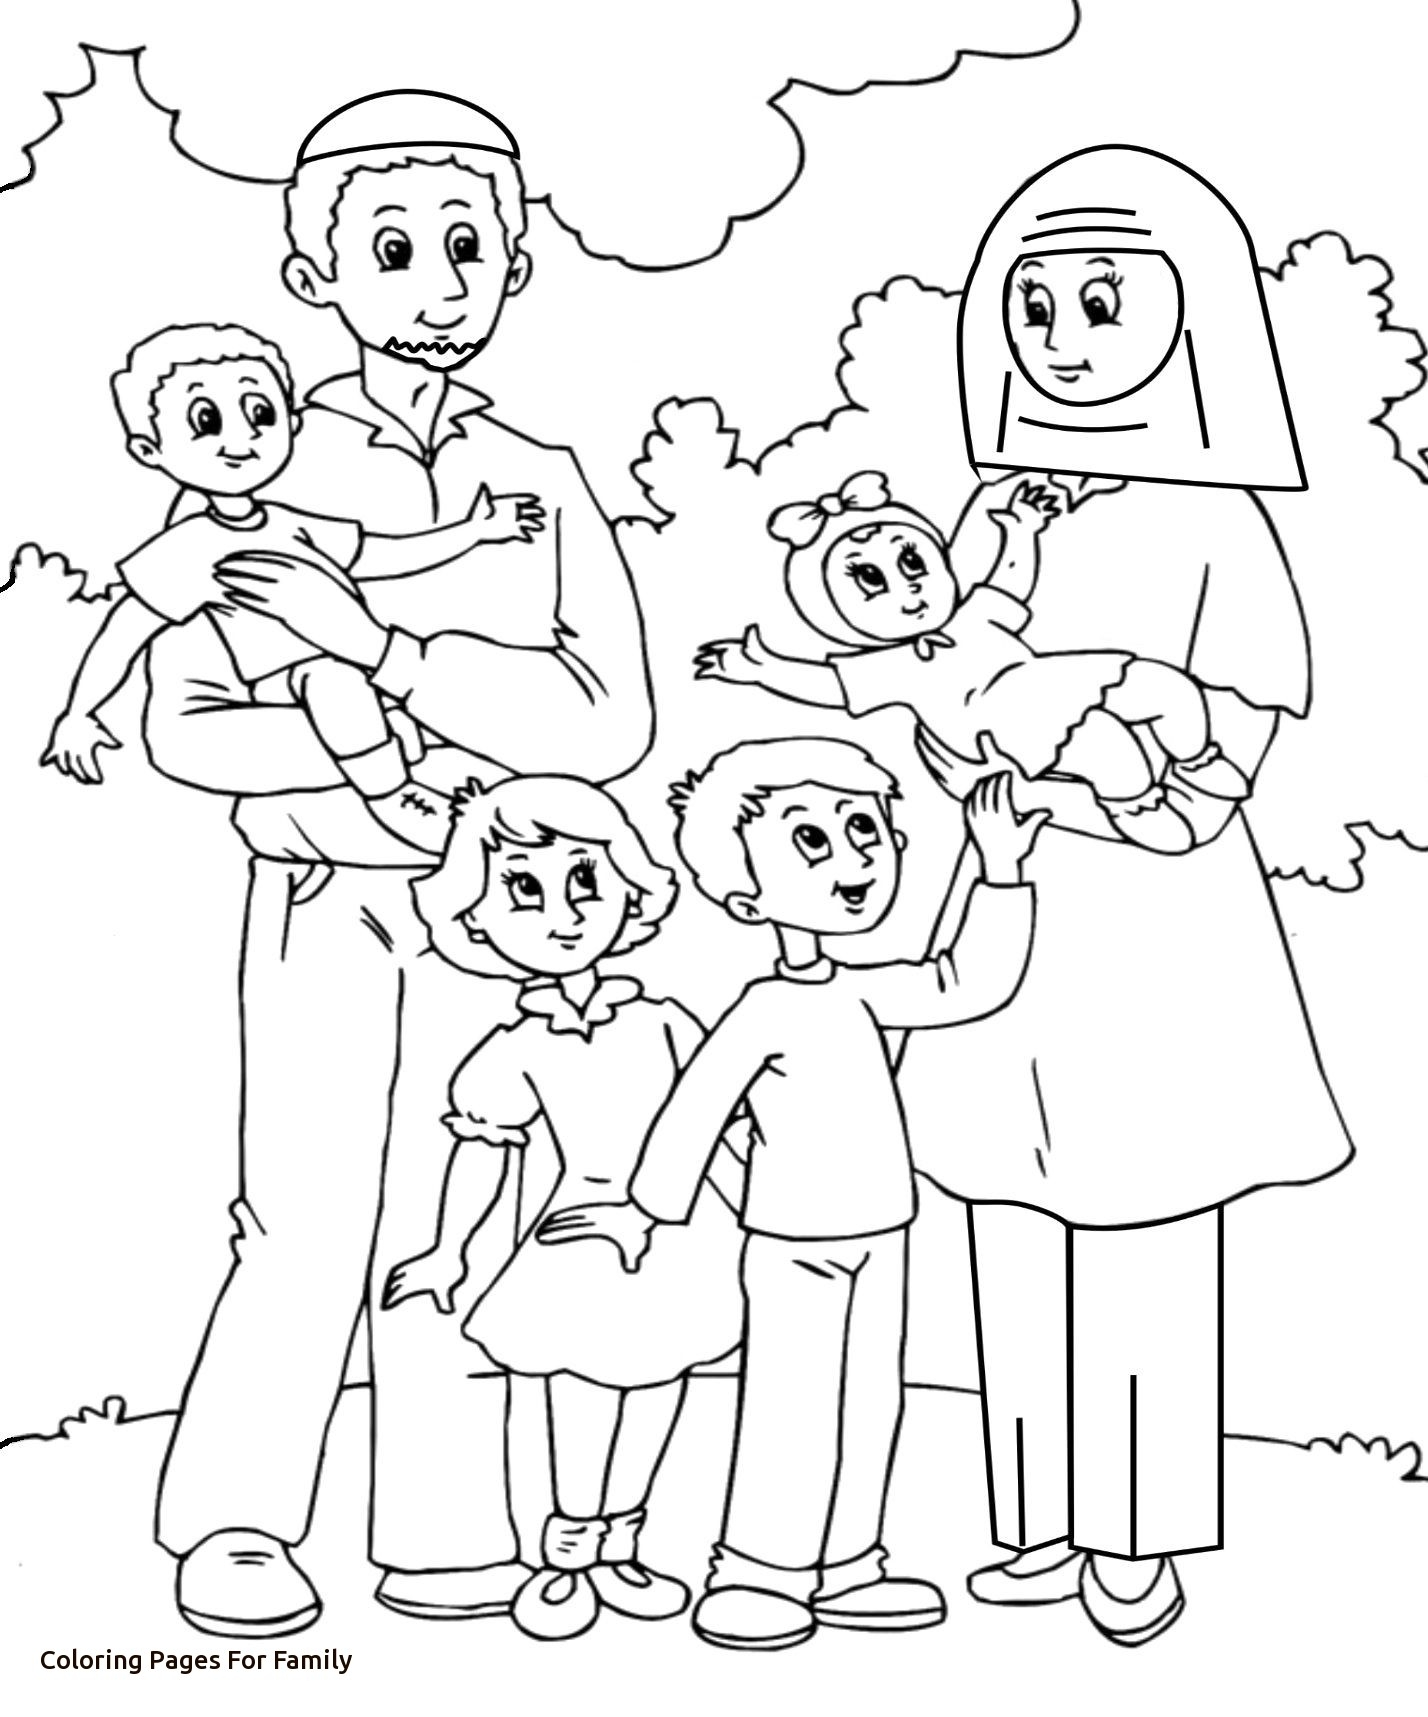 1428x1717 Black Family Coloring Pages To Print Free Coloring Sheets